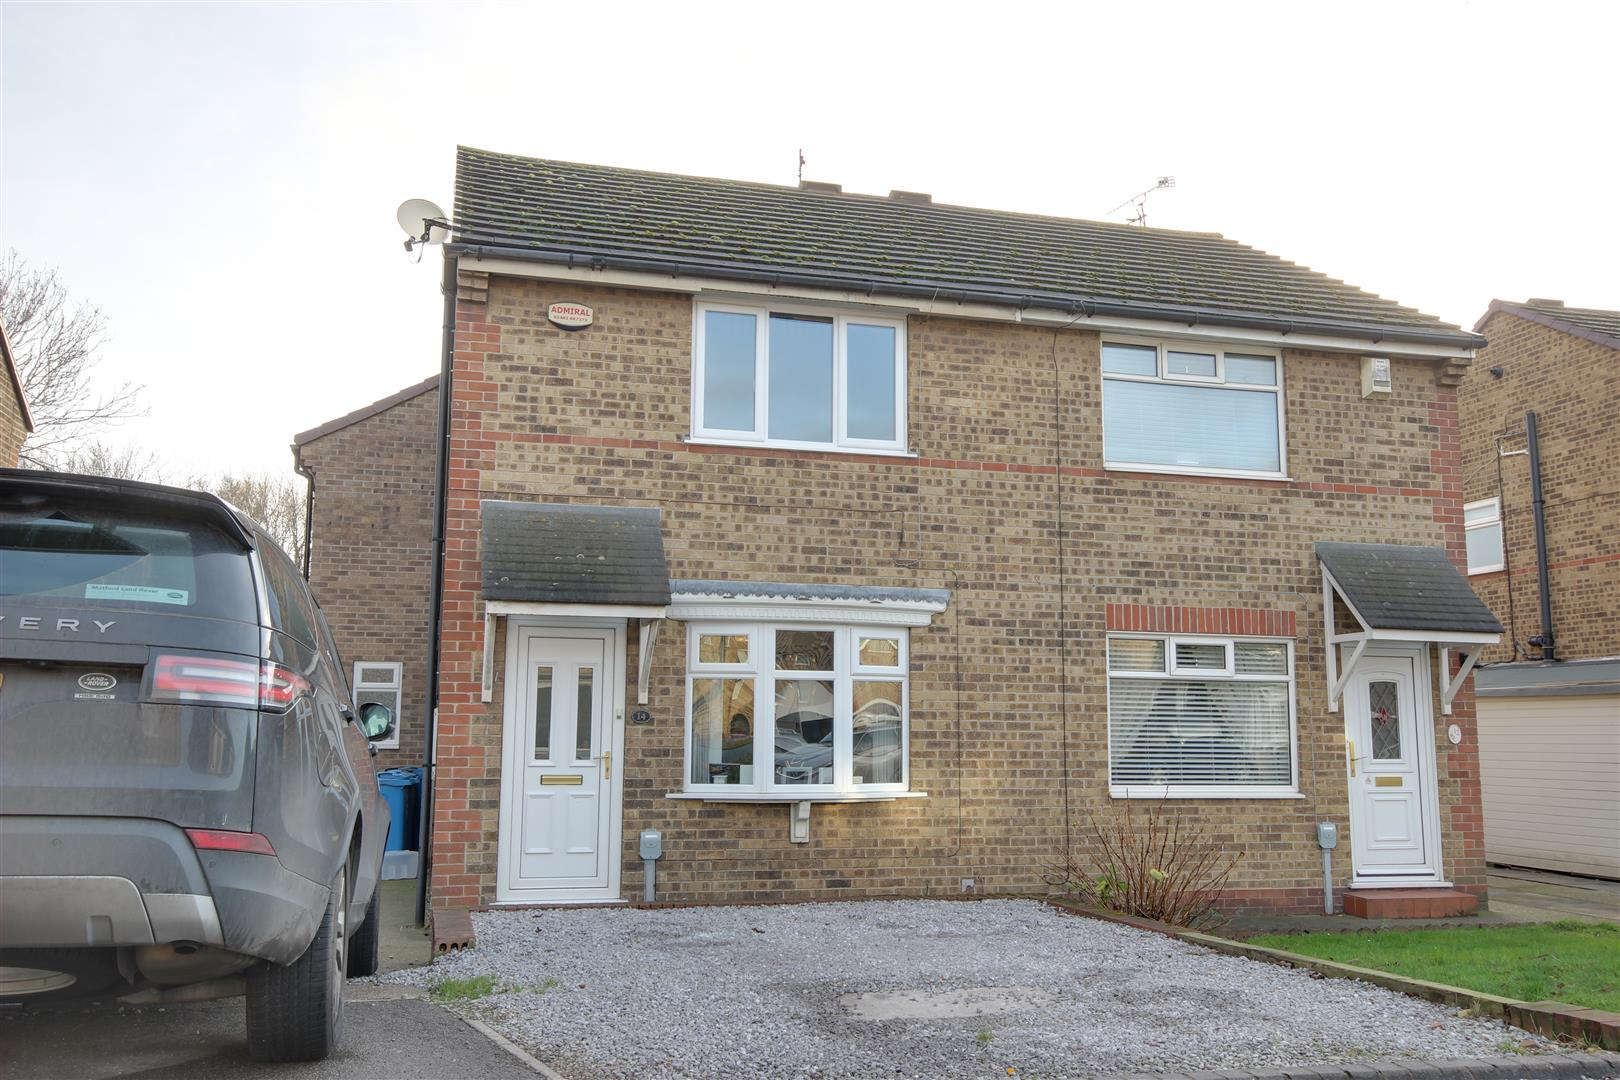 14 Brackley Close, Hull, 14, HU8 8EF